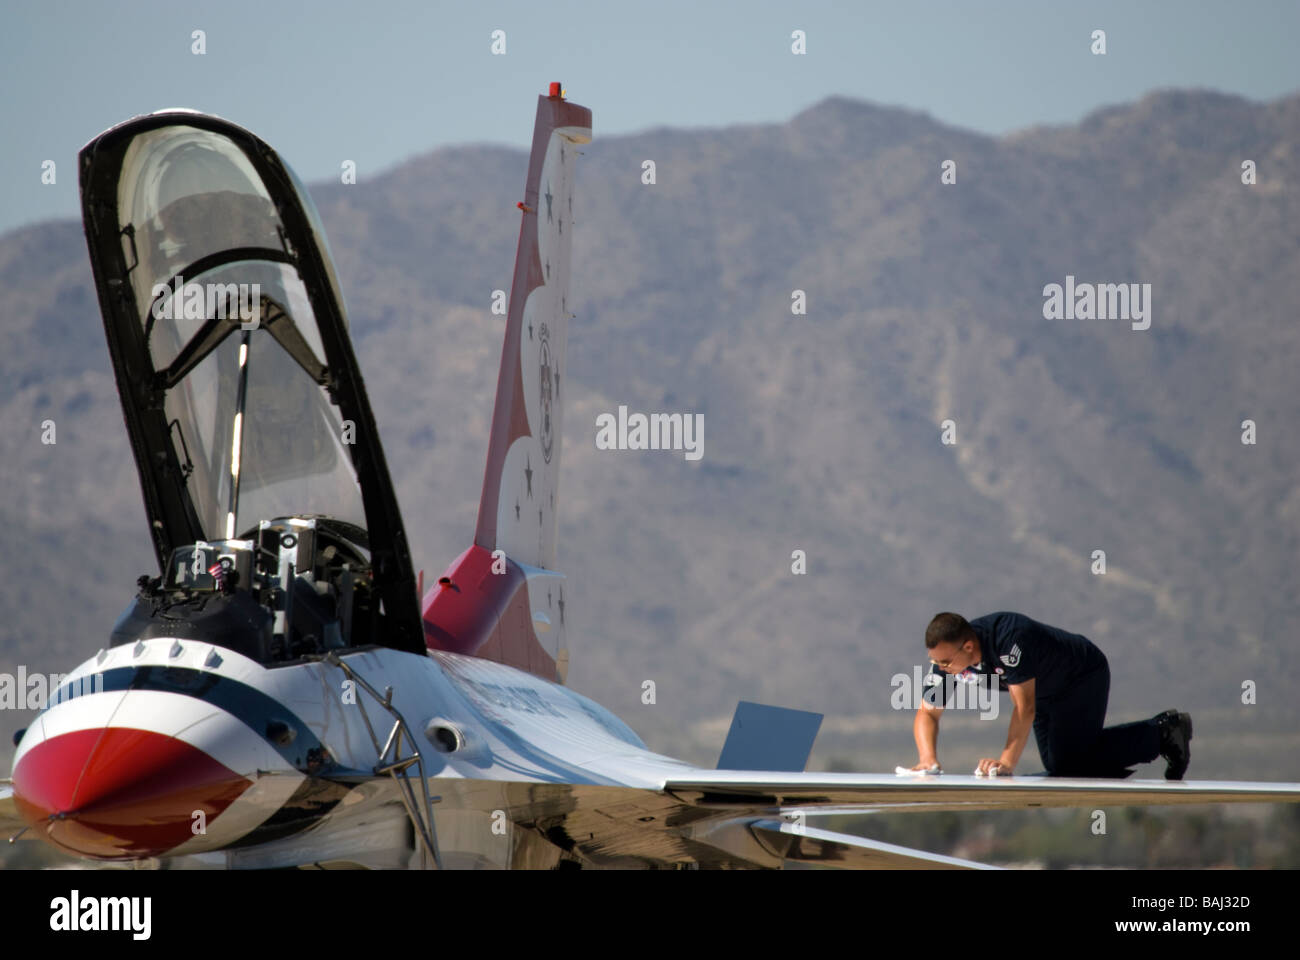 A crew member works on the wing of an F-16 'Thunderbird' before a demonstration at an airshow. - Stock Image